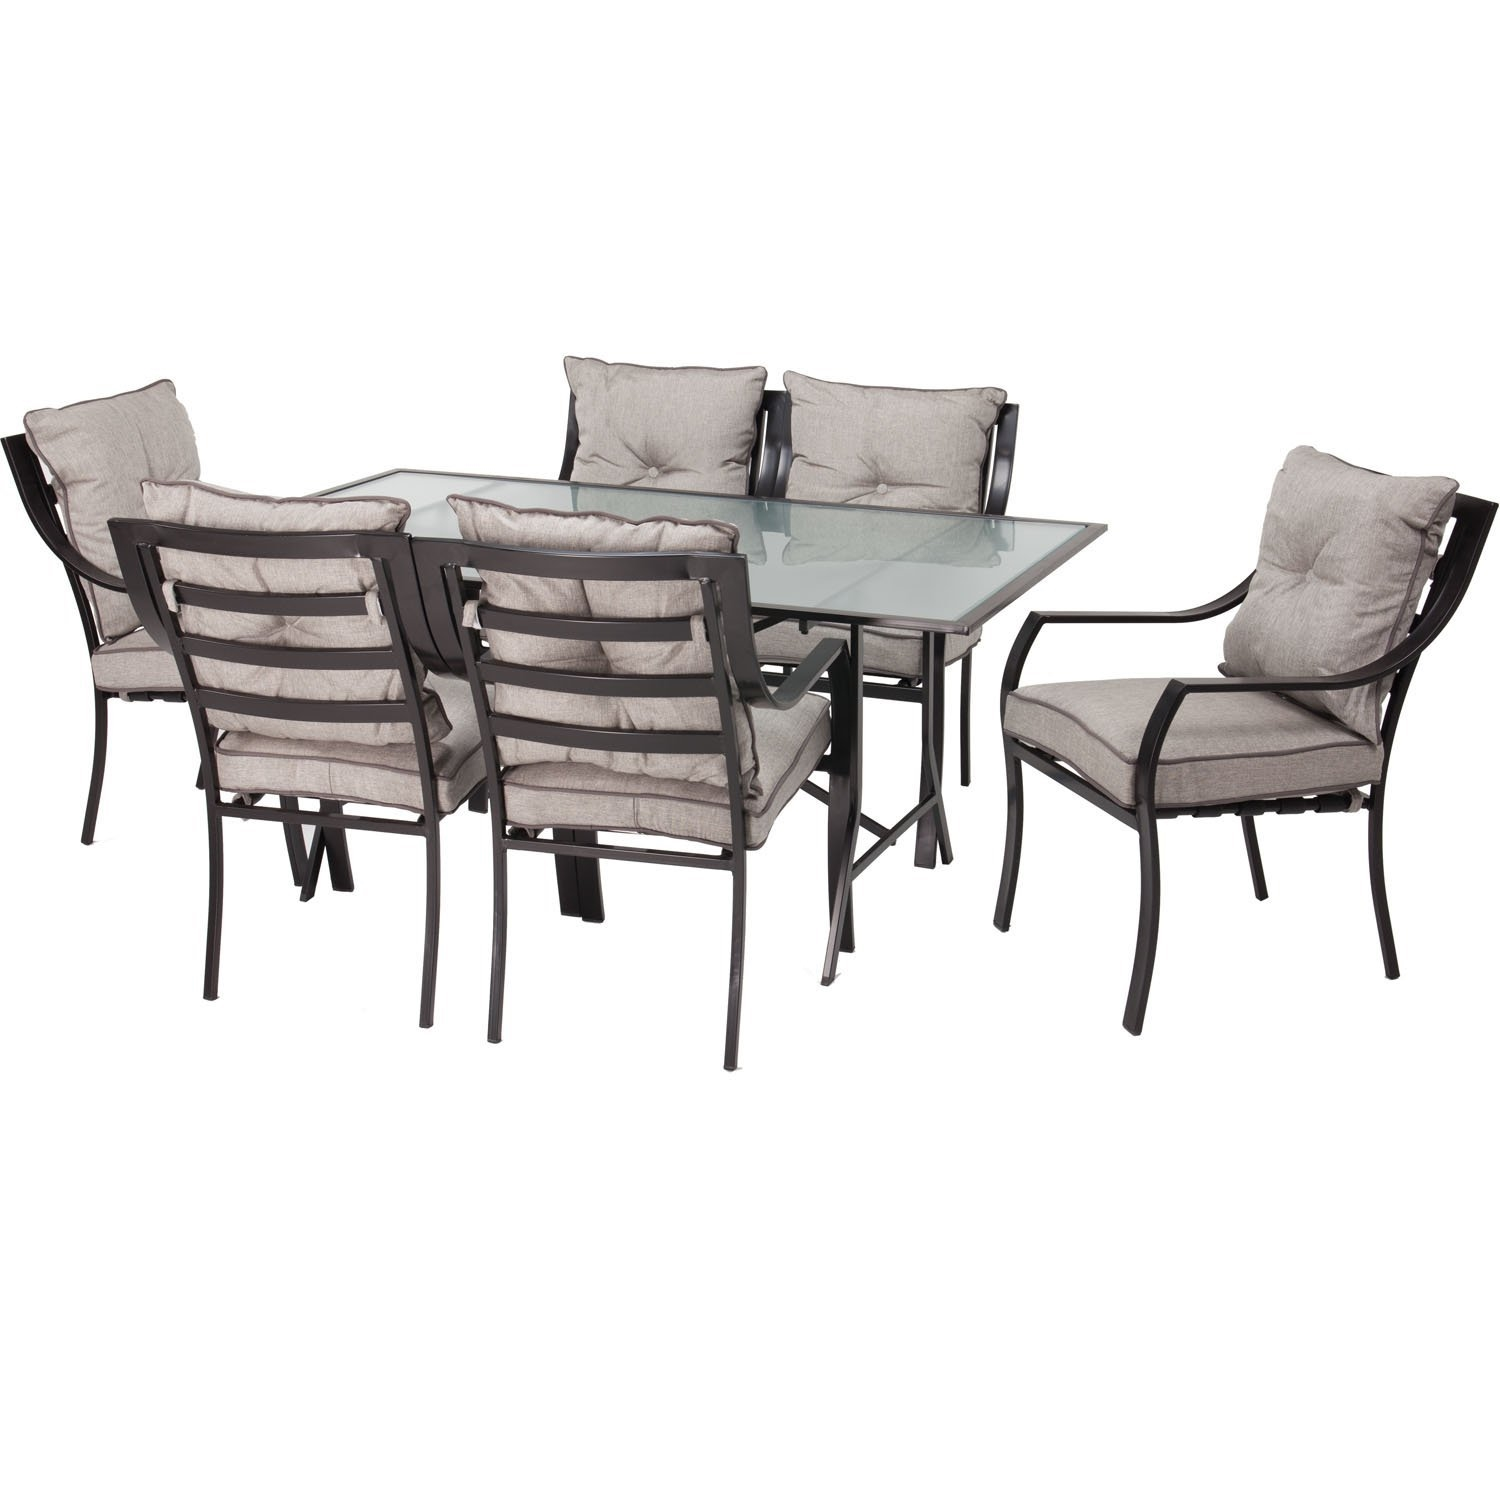 seat cushions for outdoor metal chairs. 7-piece outdoor patio furniture metal dining set with cushions seat for chairs u